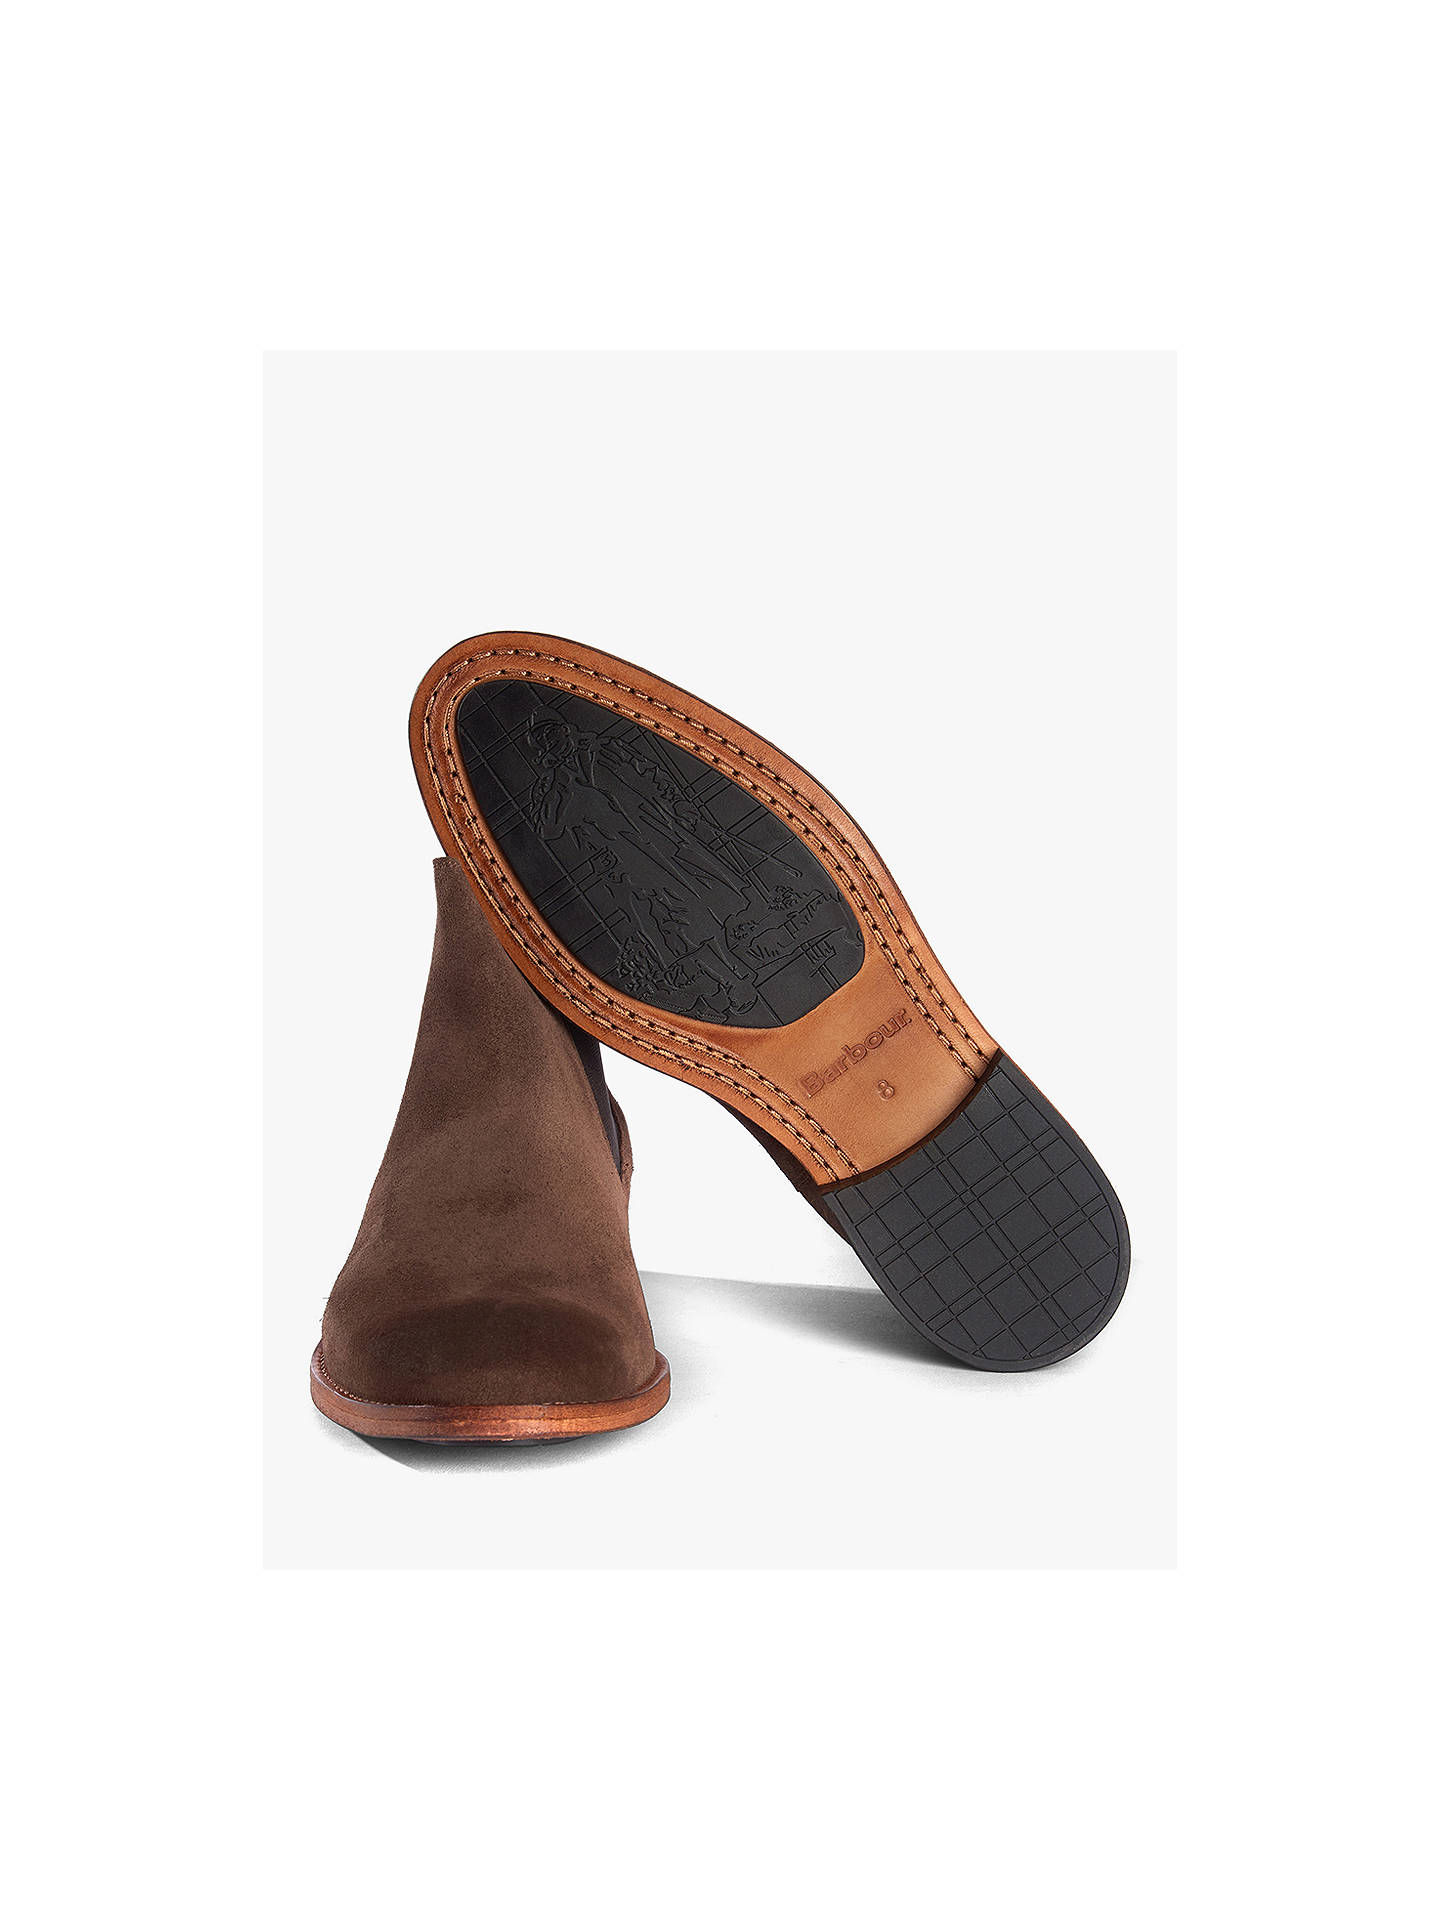 Buy Barbour Bedlington Suede Chelsea Boots, Choc Suede, 8 Online at johnlewis.com